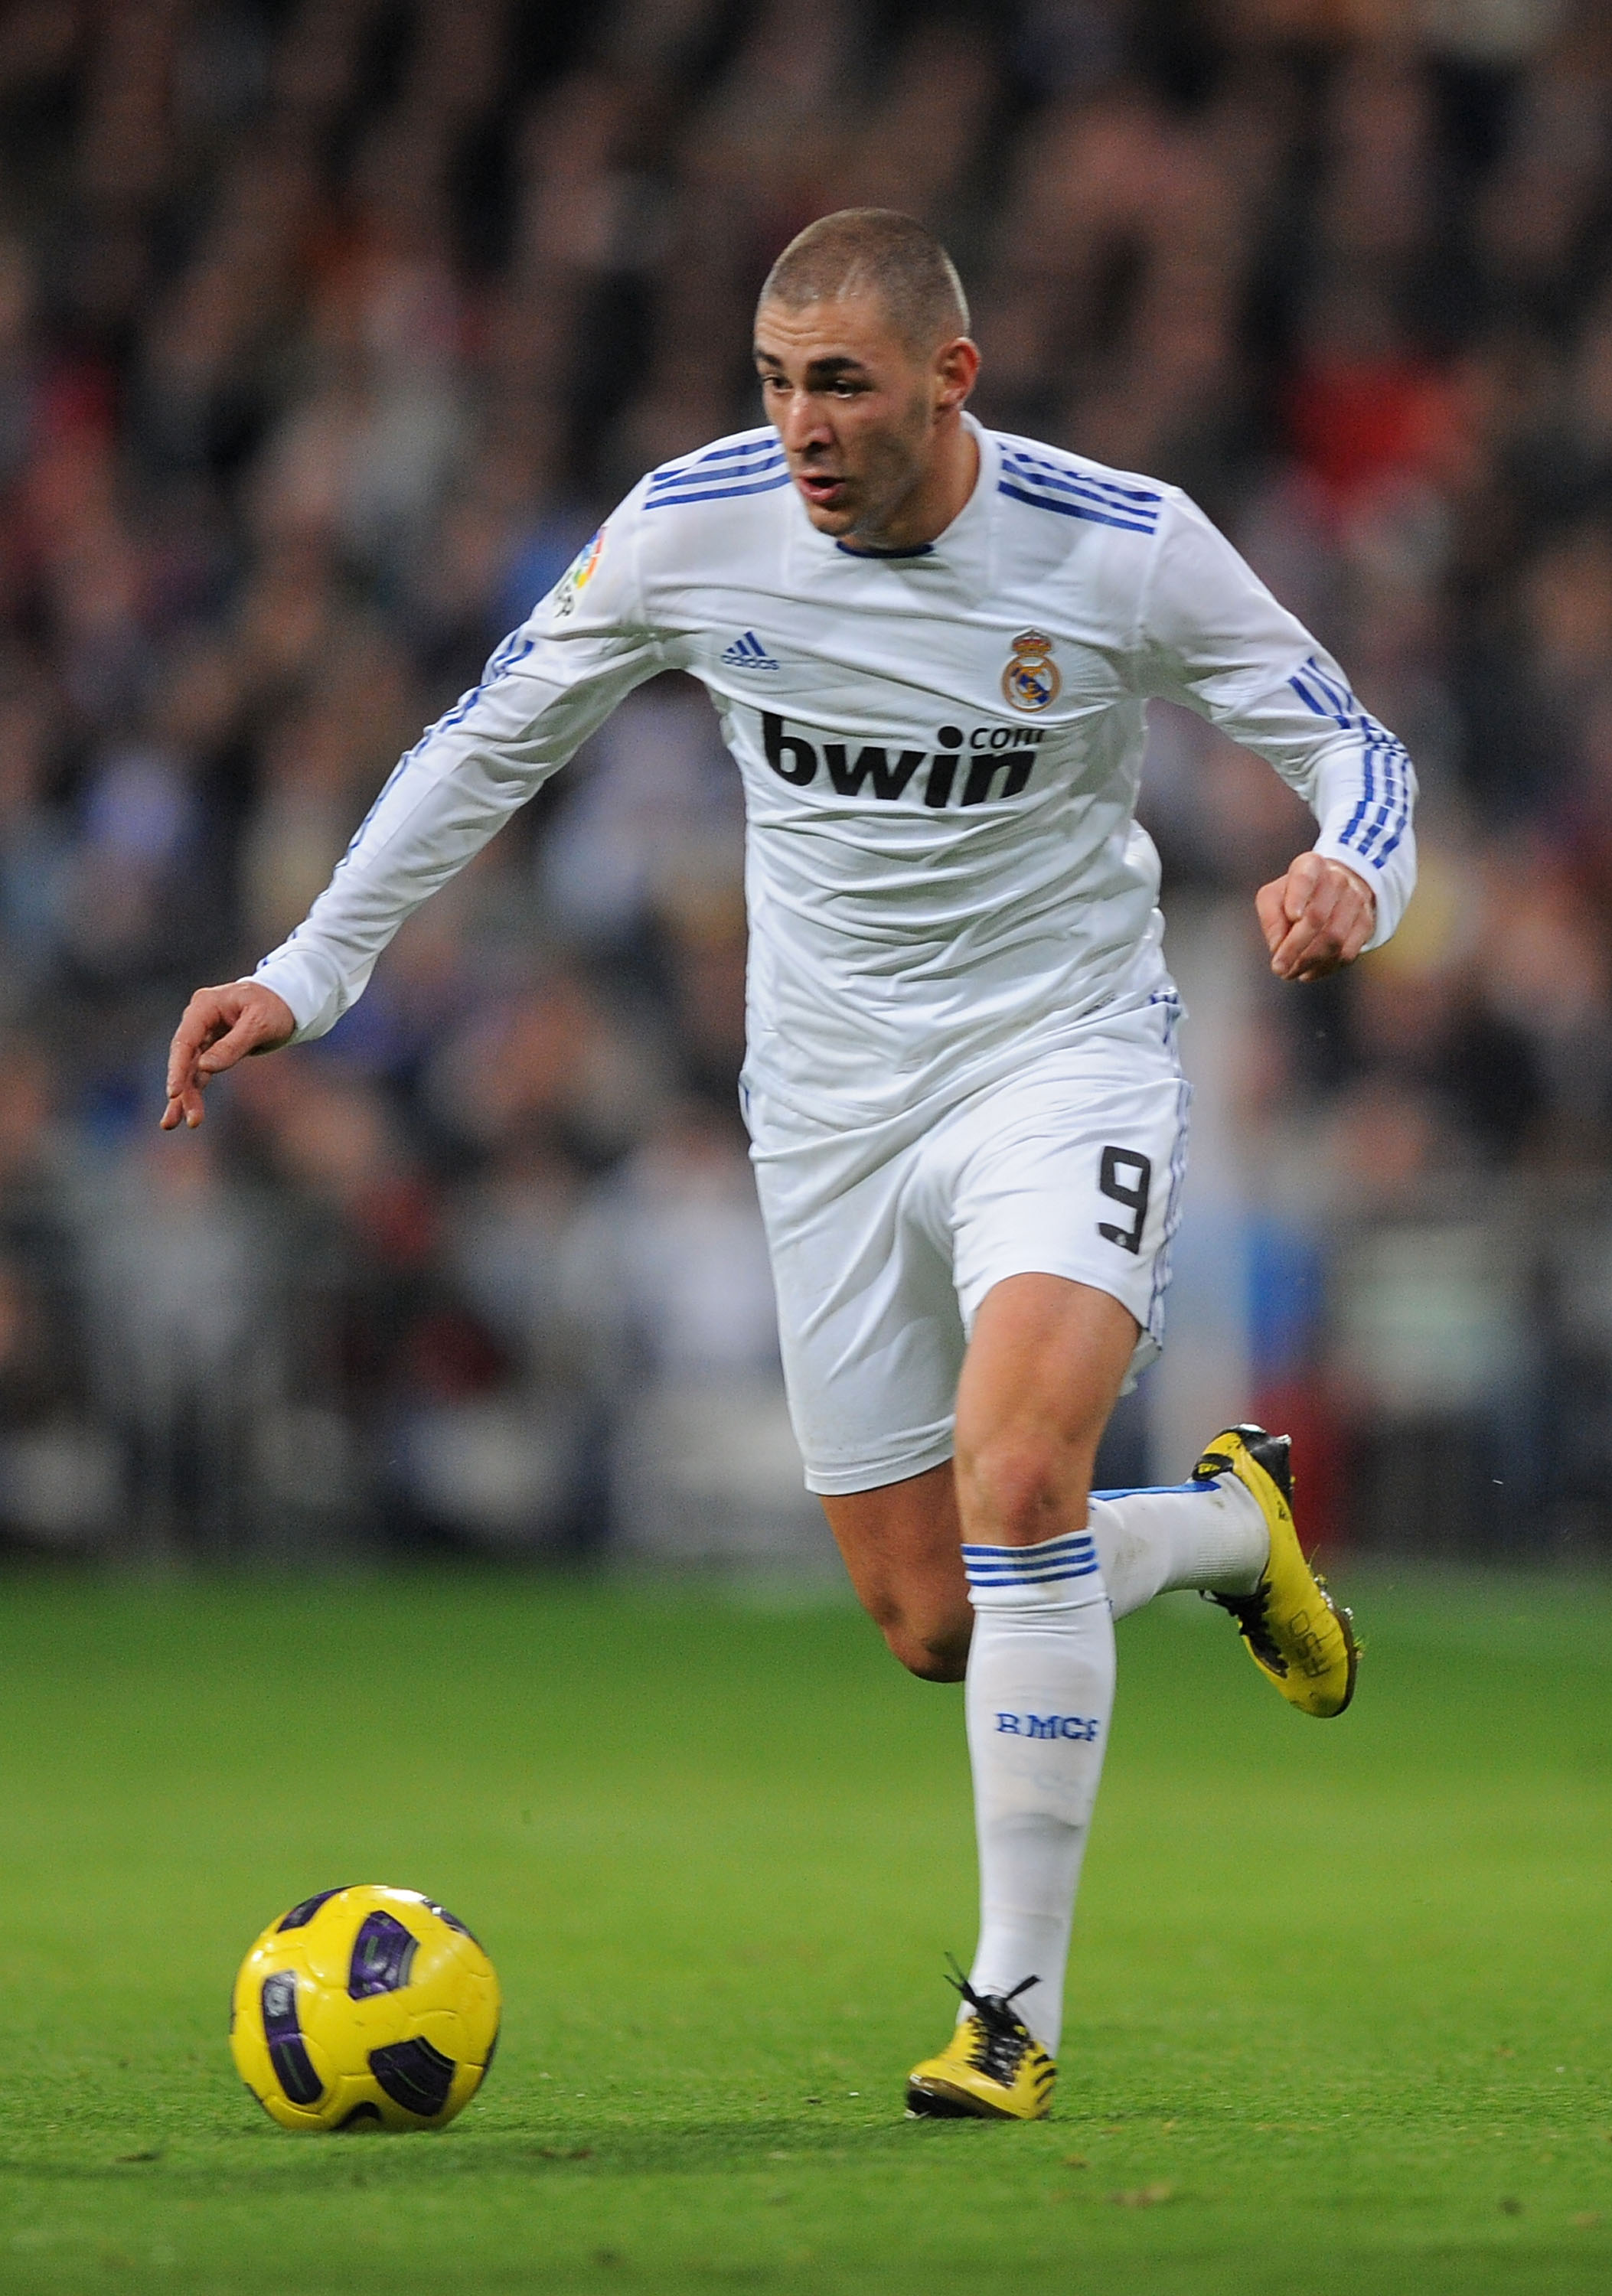 MADRID, SPAIN - JANUARY 09:  Karim Benzema of Real Madrid runs with the ball during the La Liga match between Real Madrid and Villarreal at Estadio Santiago Bernabeu on January 9, 2011 in Madrid, Spain.  (Photo by Denis Doyle/Getty Images)